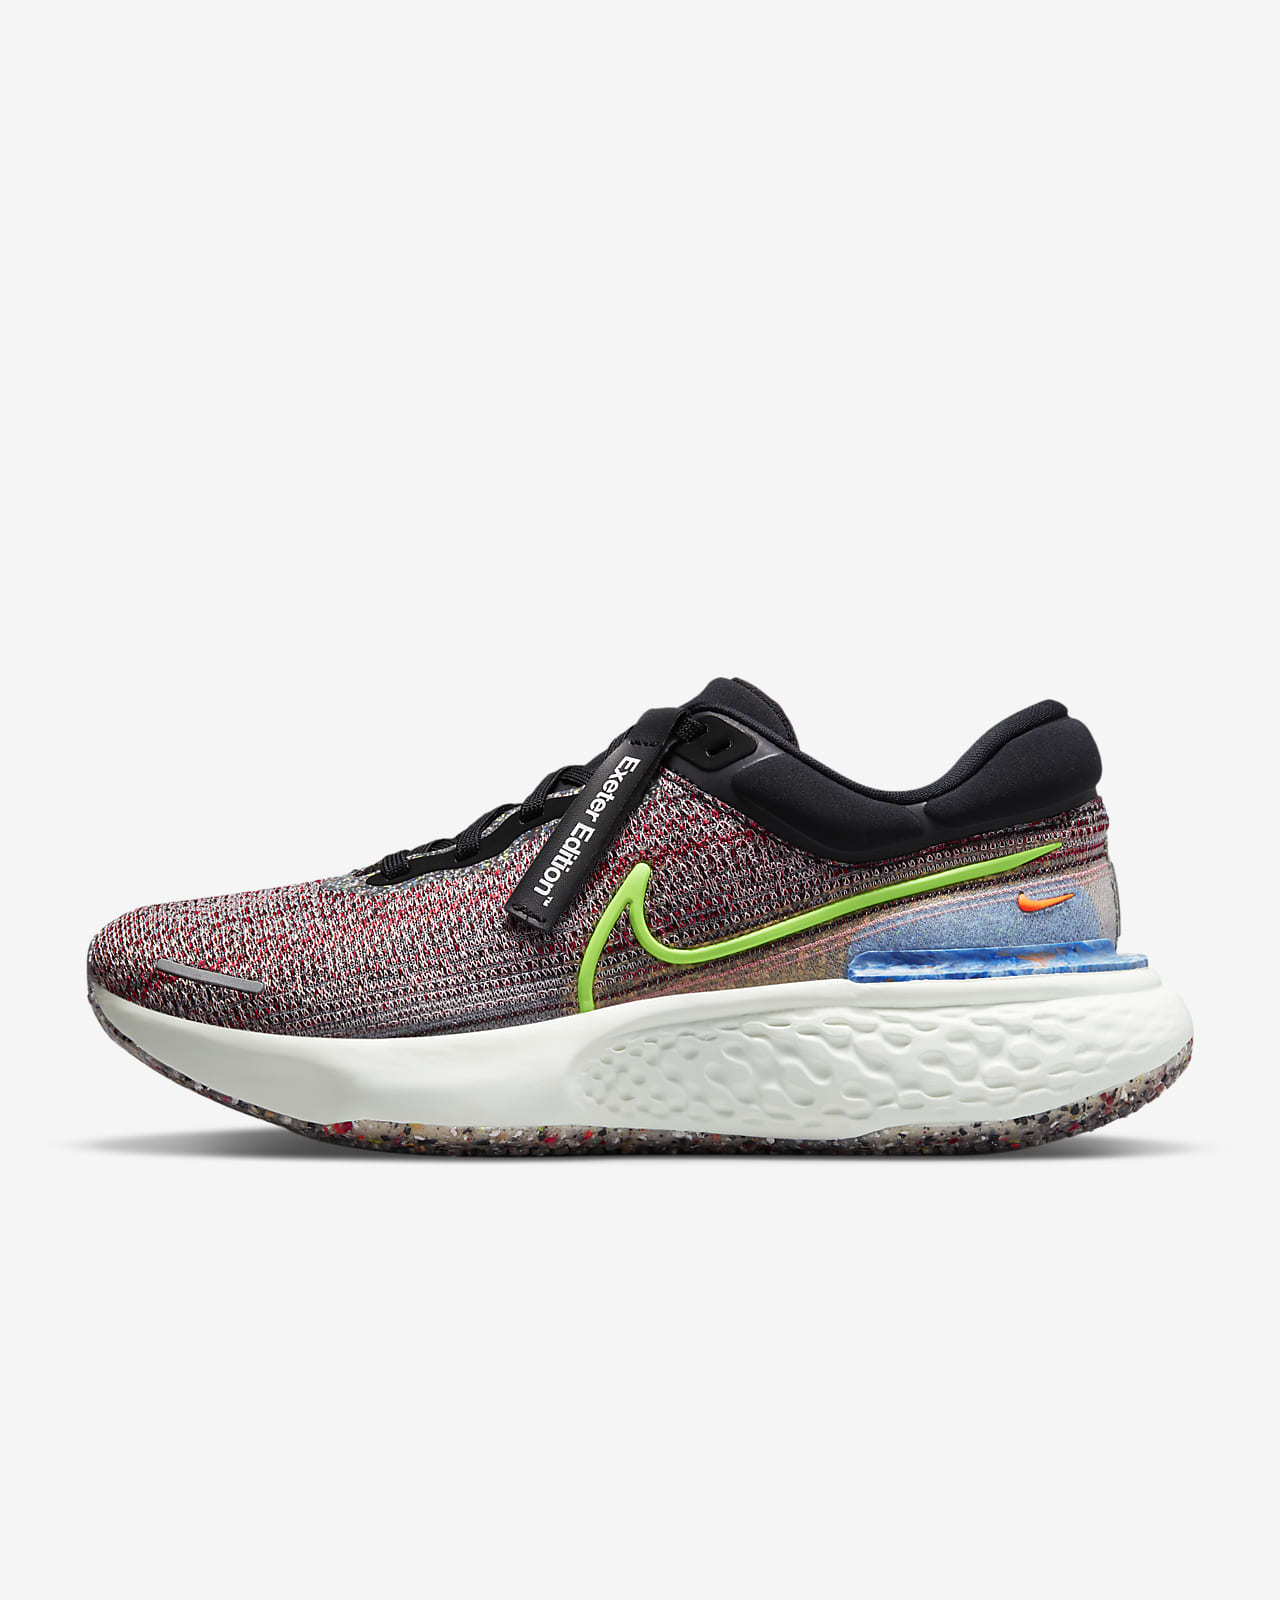 Nike ZoomX Invincible Run Flyknit Exeter Edition Men's Road Running Shoes